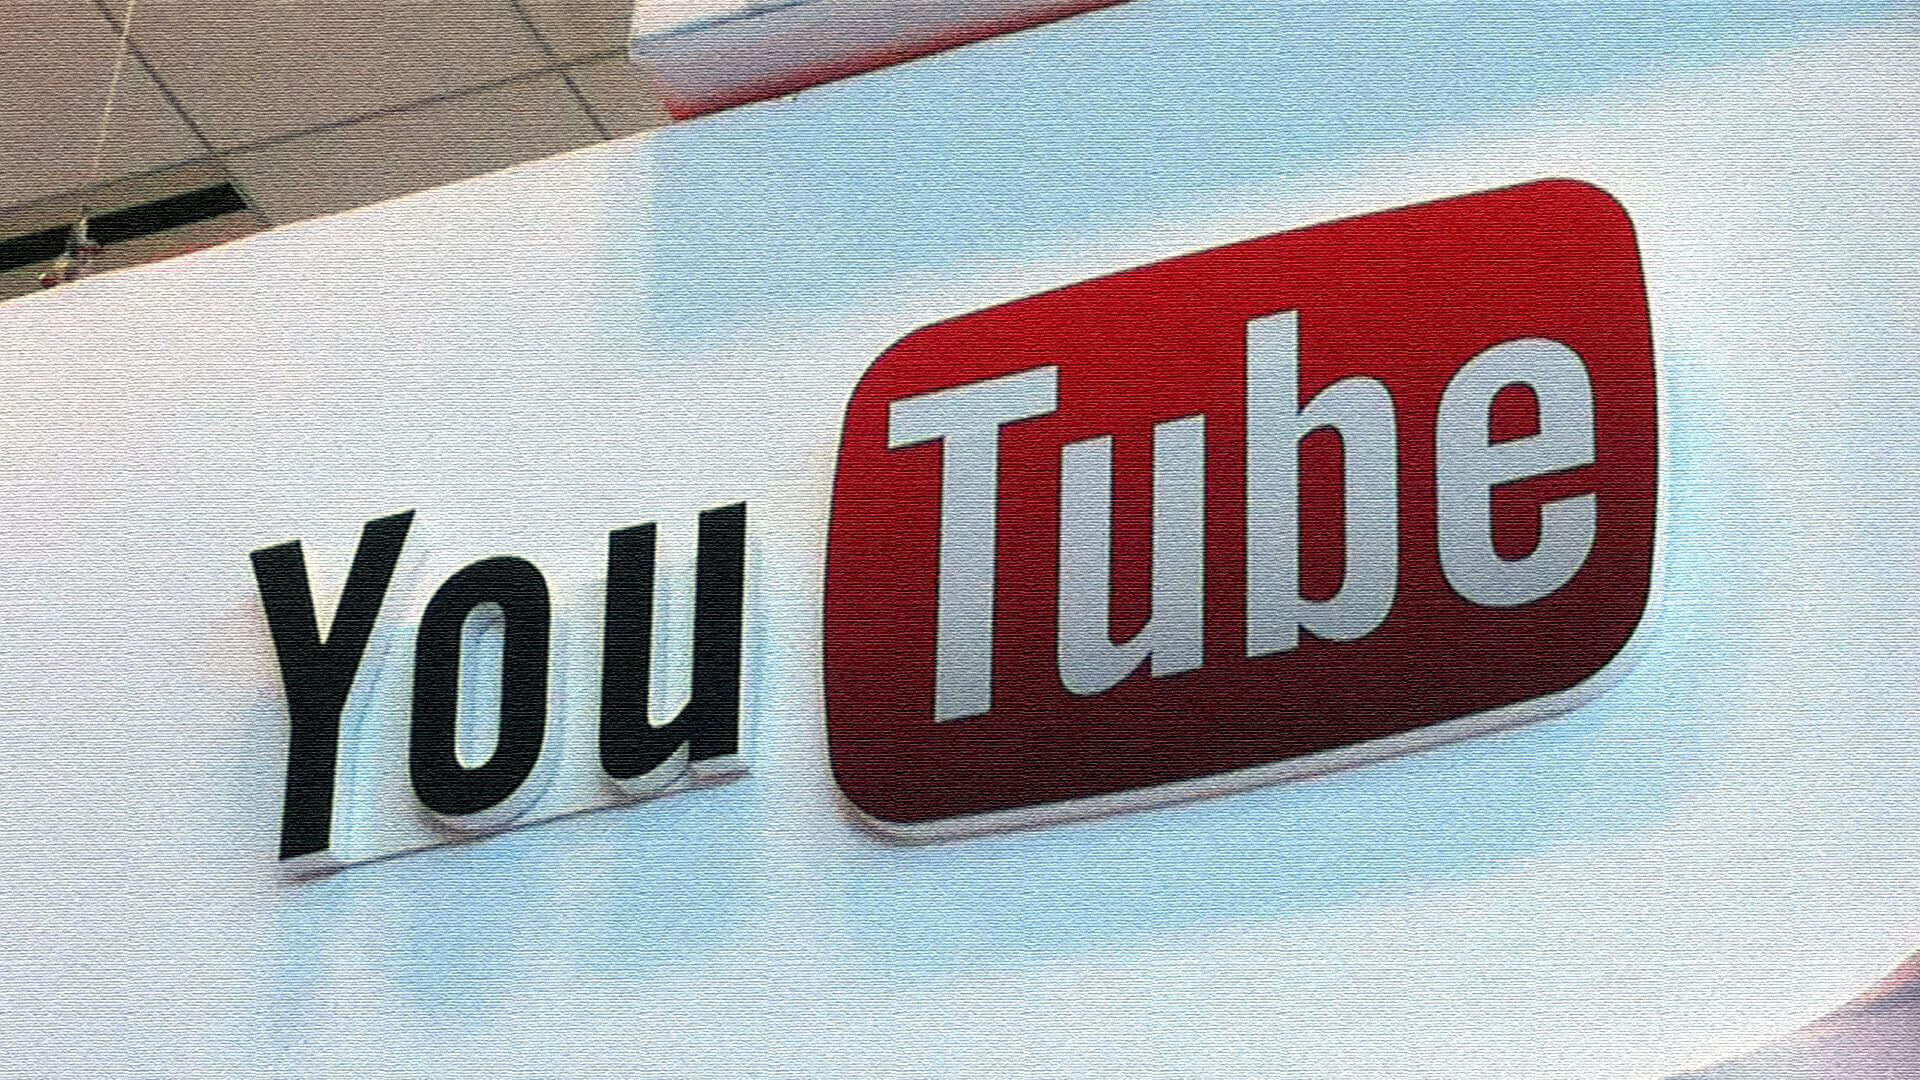 YouTube gives back verified badges to creators after backlash over recent changes